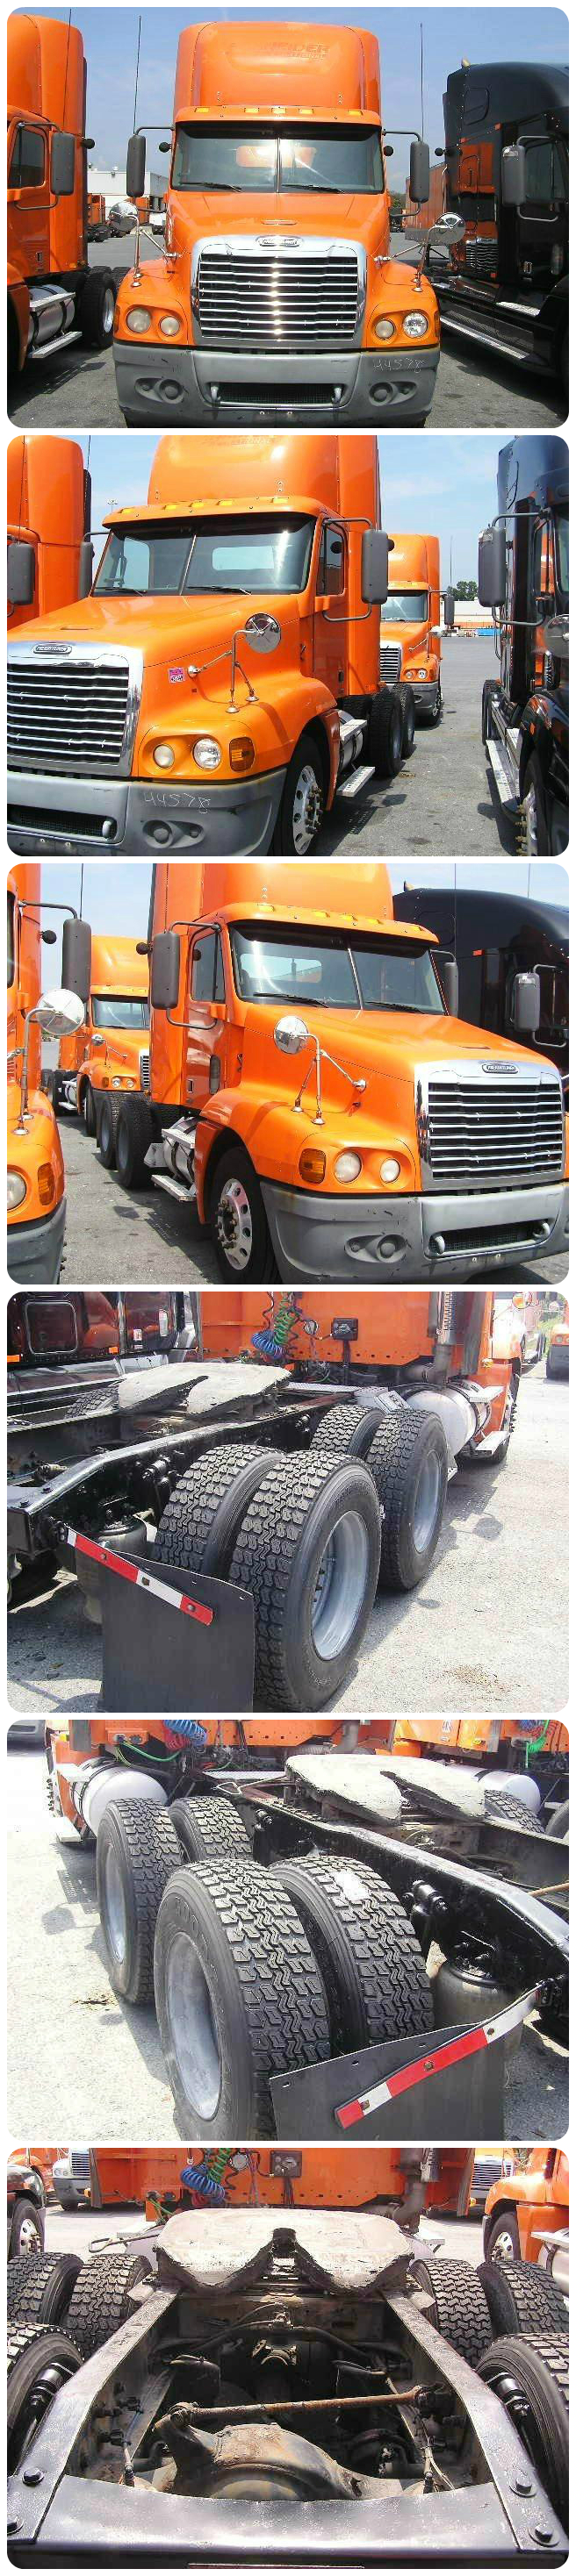 Clearancesale 06 Freightliner C120 Day Cab W 621k Miles Was 26 800 Now 22 780 Save 4 020 Used Trucks Freightliner Used Trailers For Sale